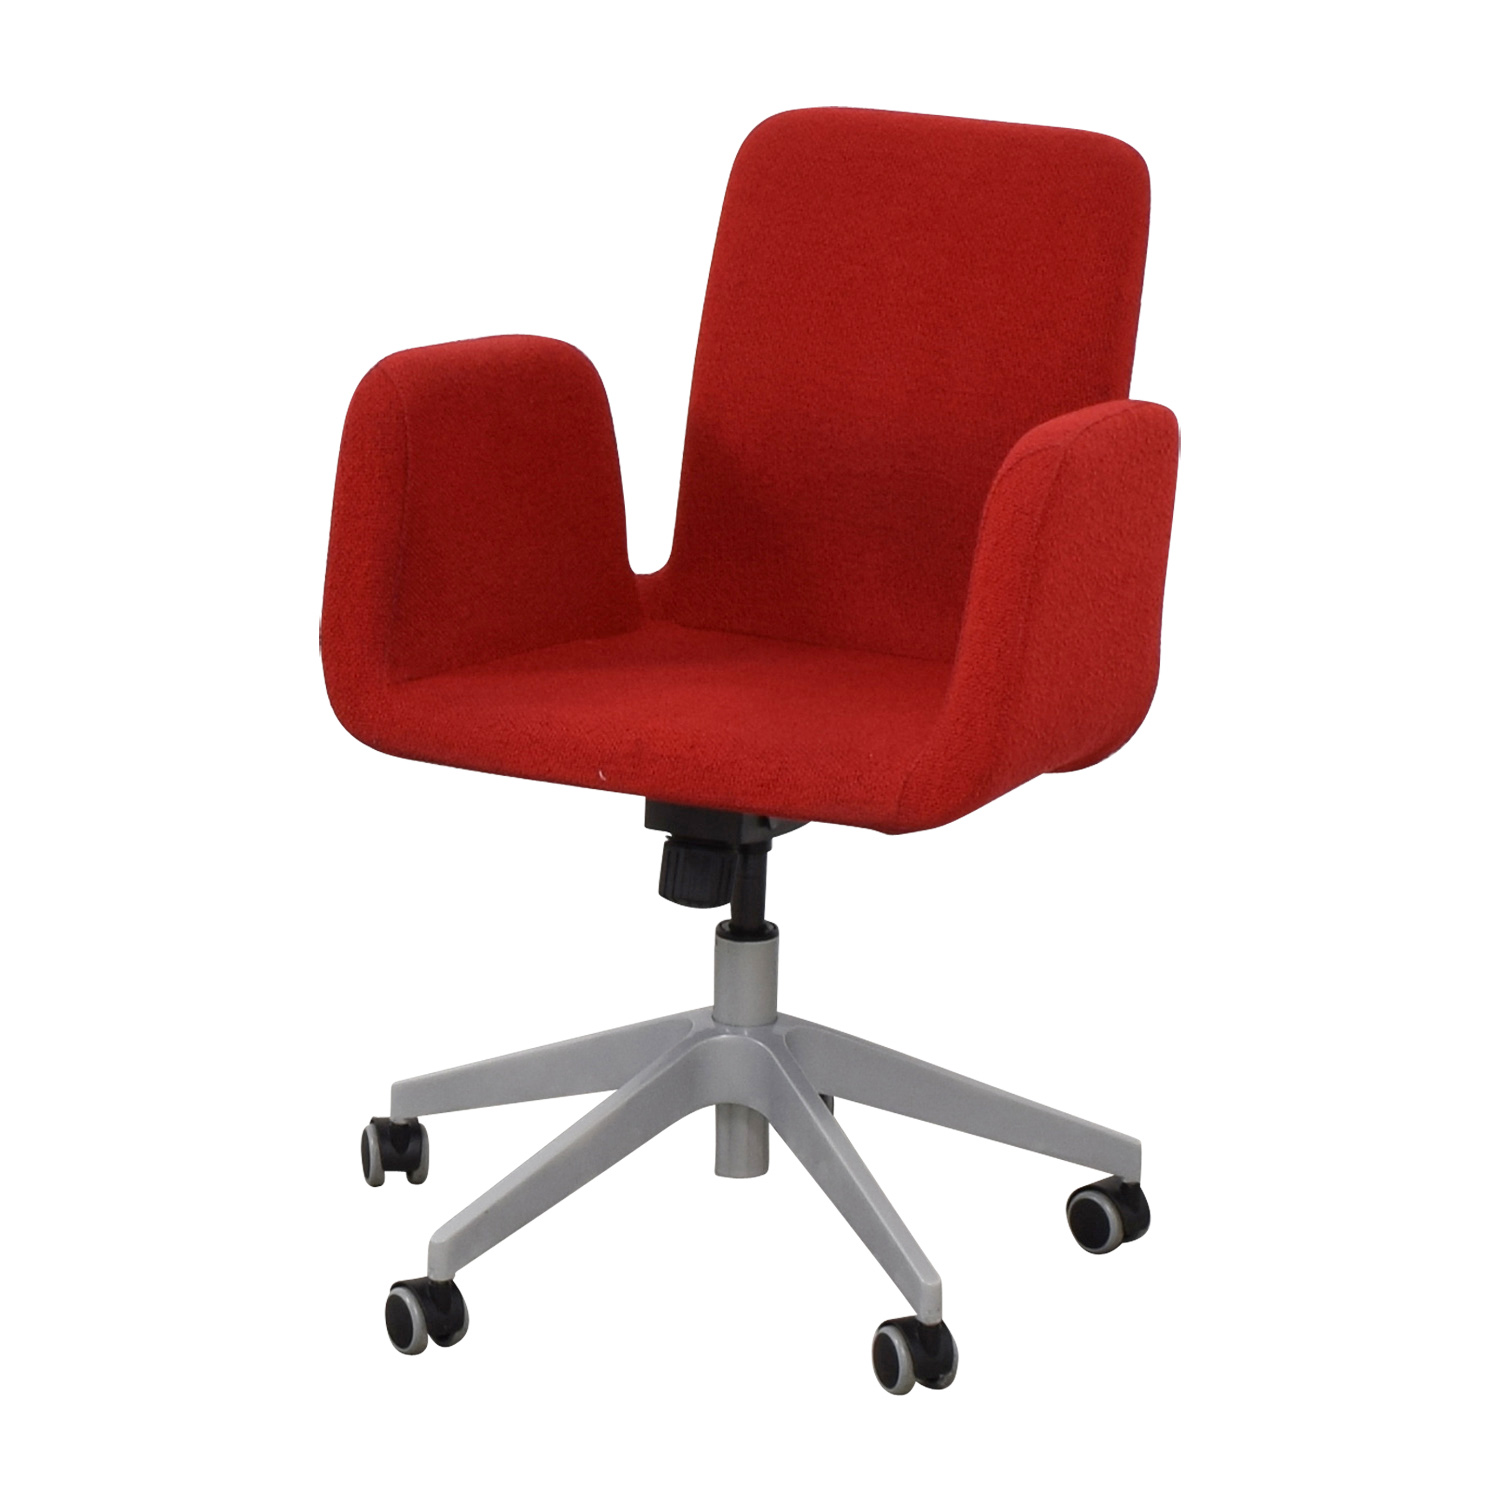 Rolling Desk Chairs 51 Off Ikea Ikea Patrik Rolling Desk Chair Chairs